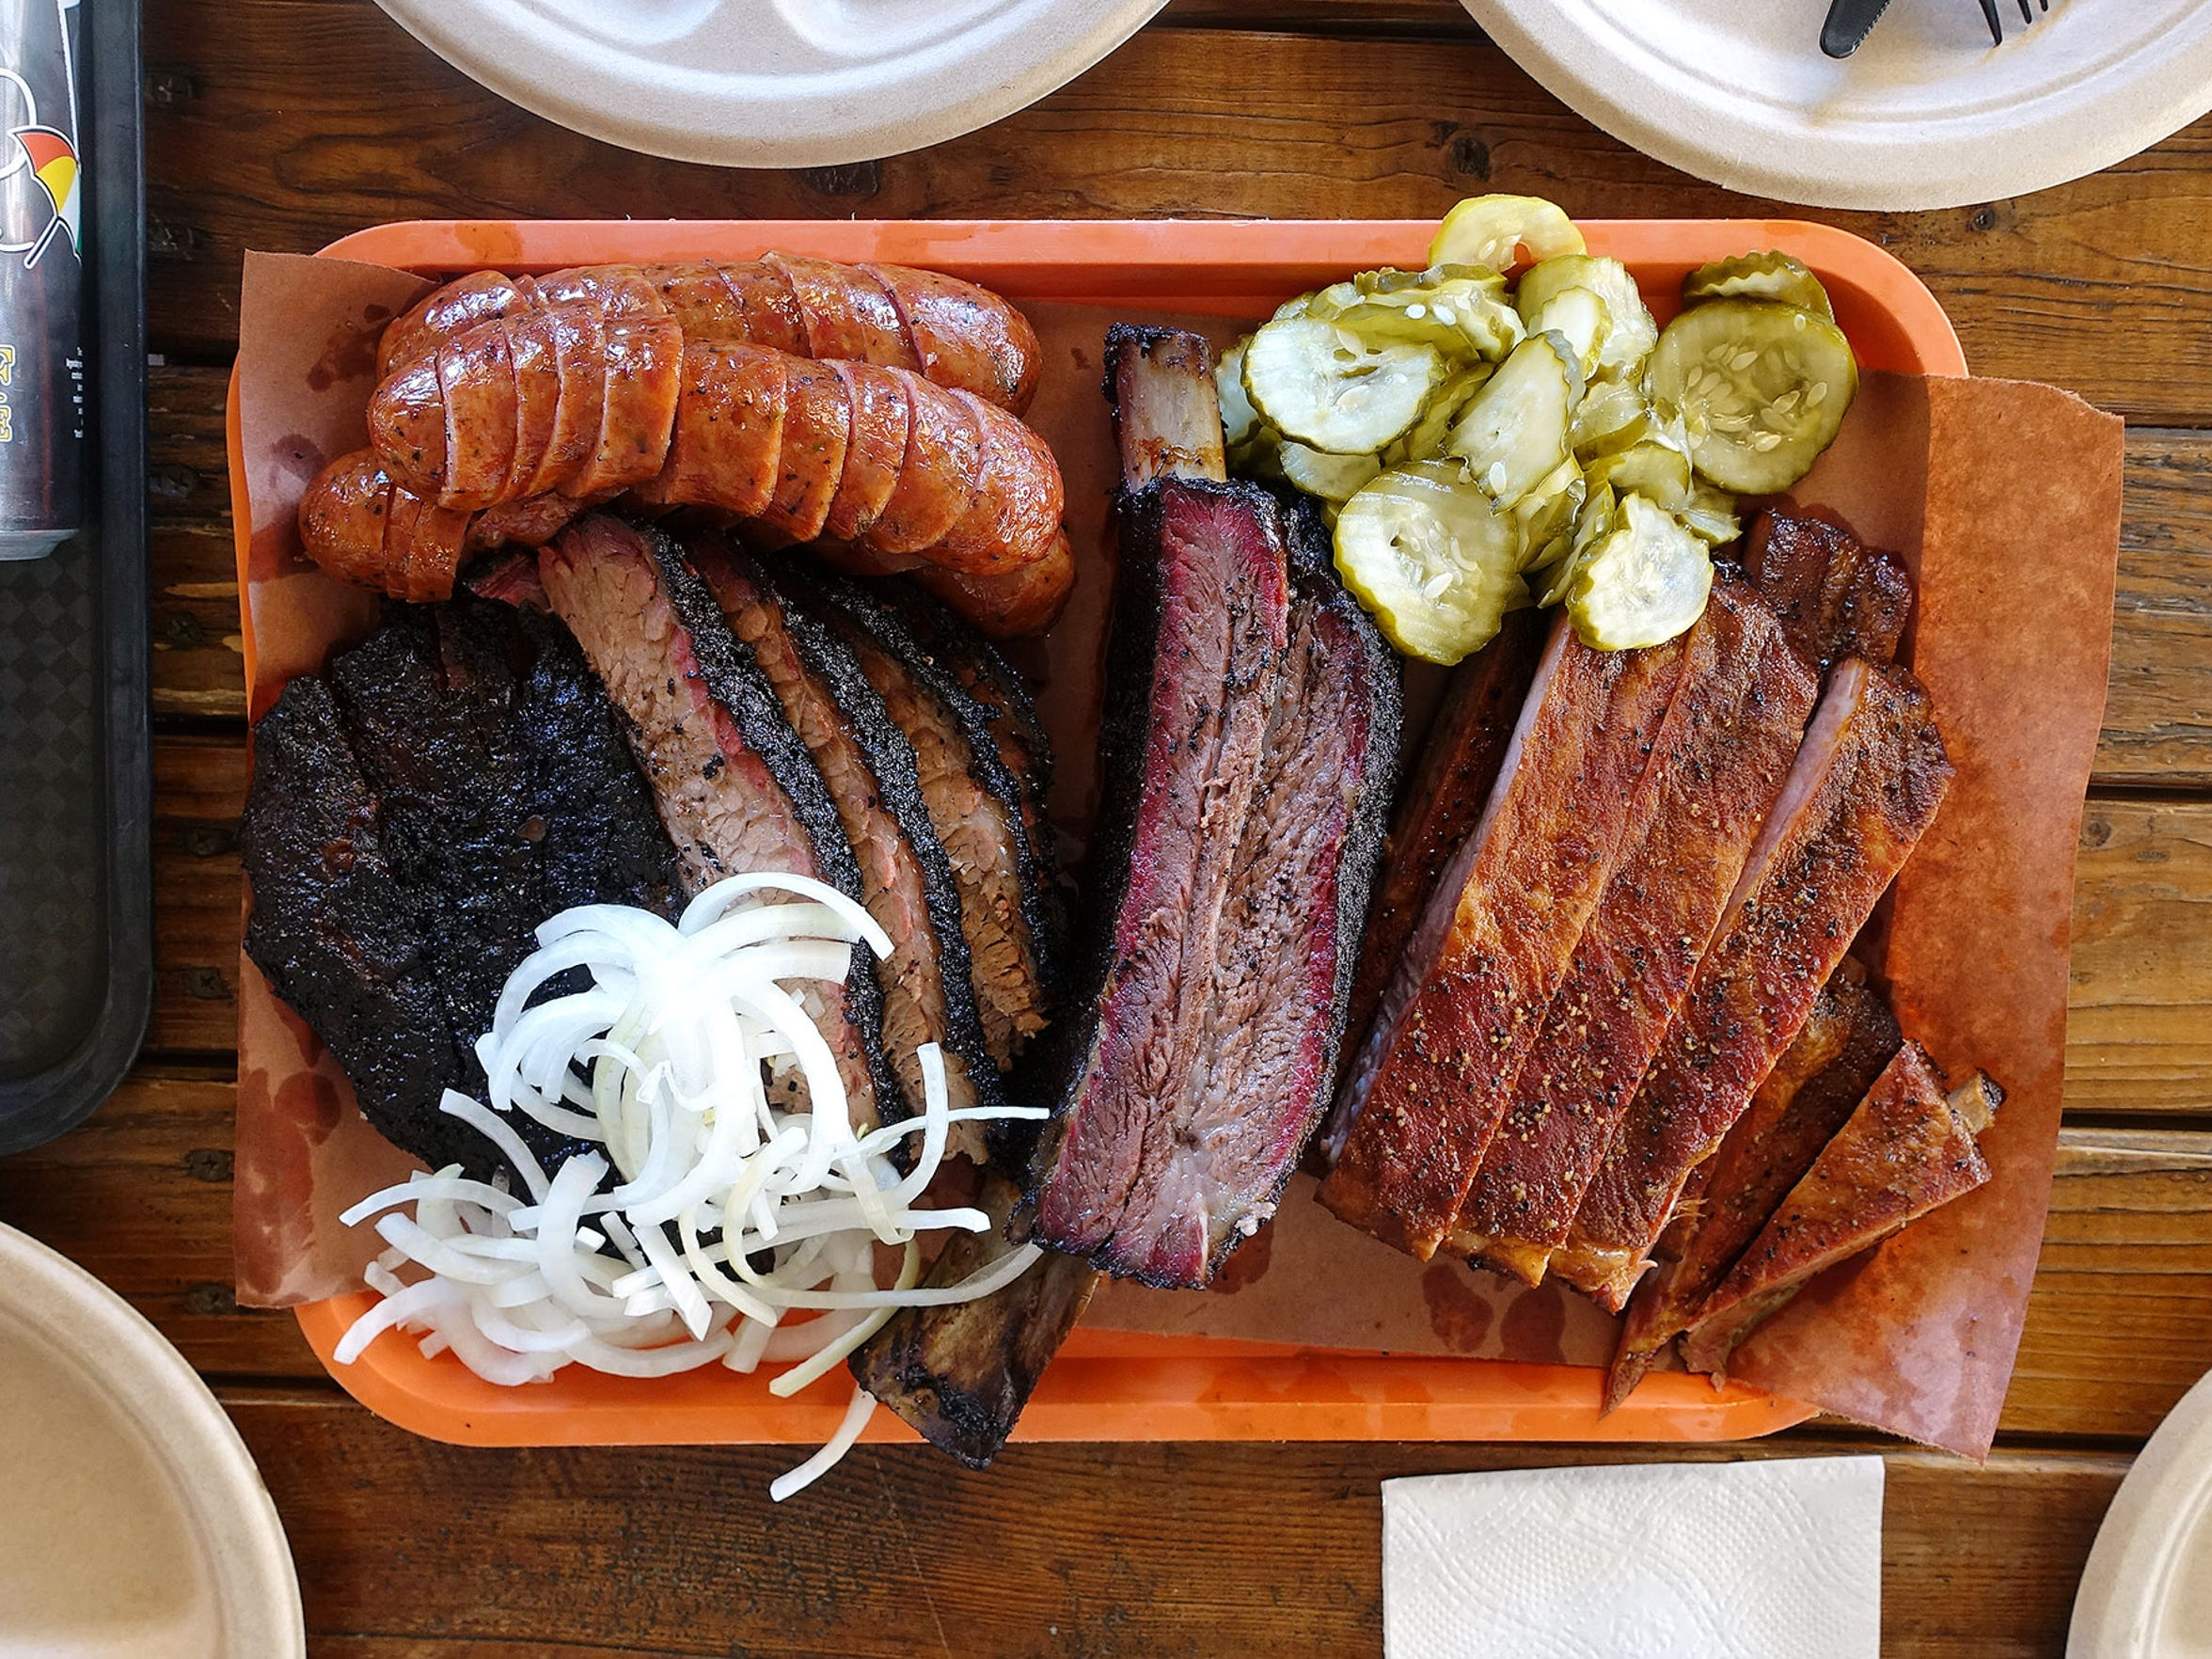 A selection of barbecue (from top left: sausage, fatty